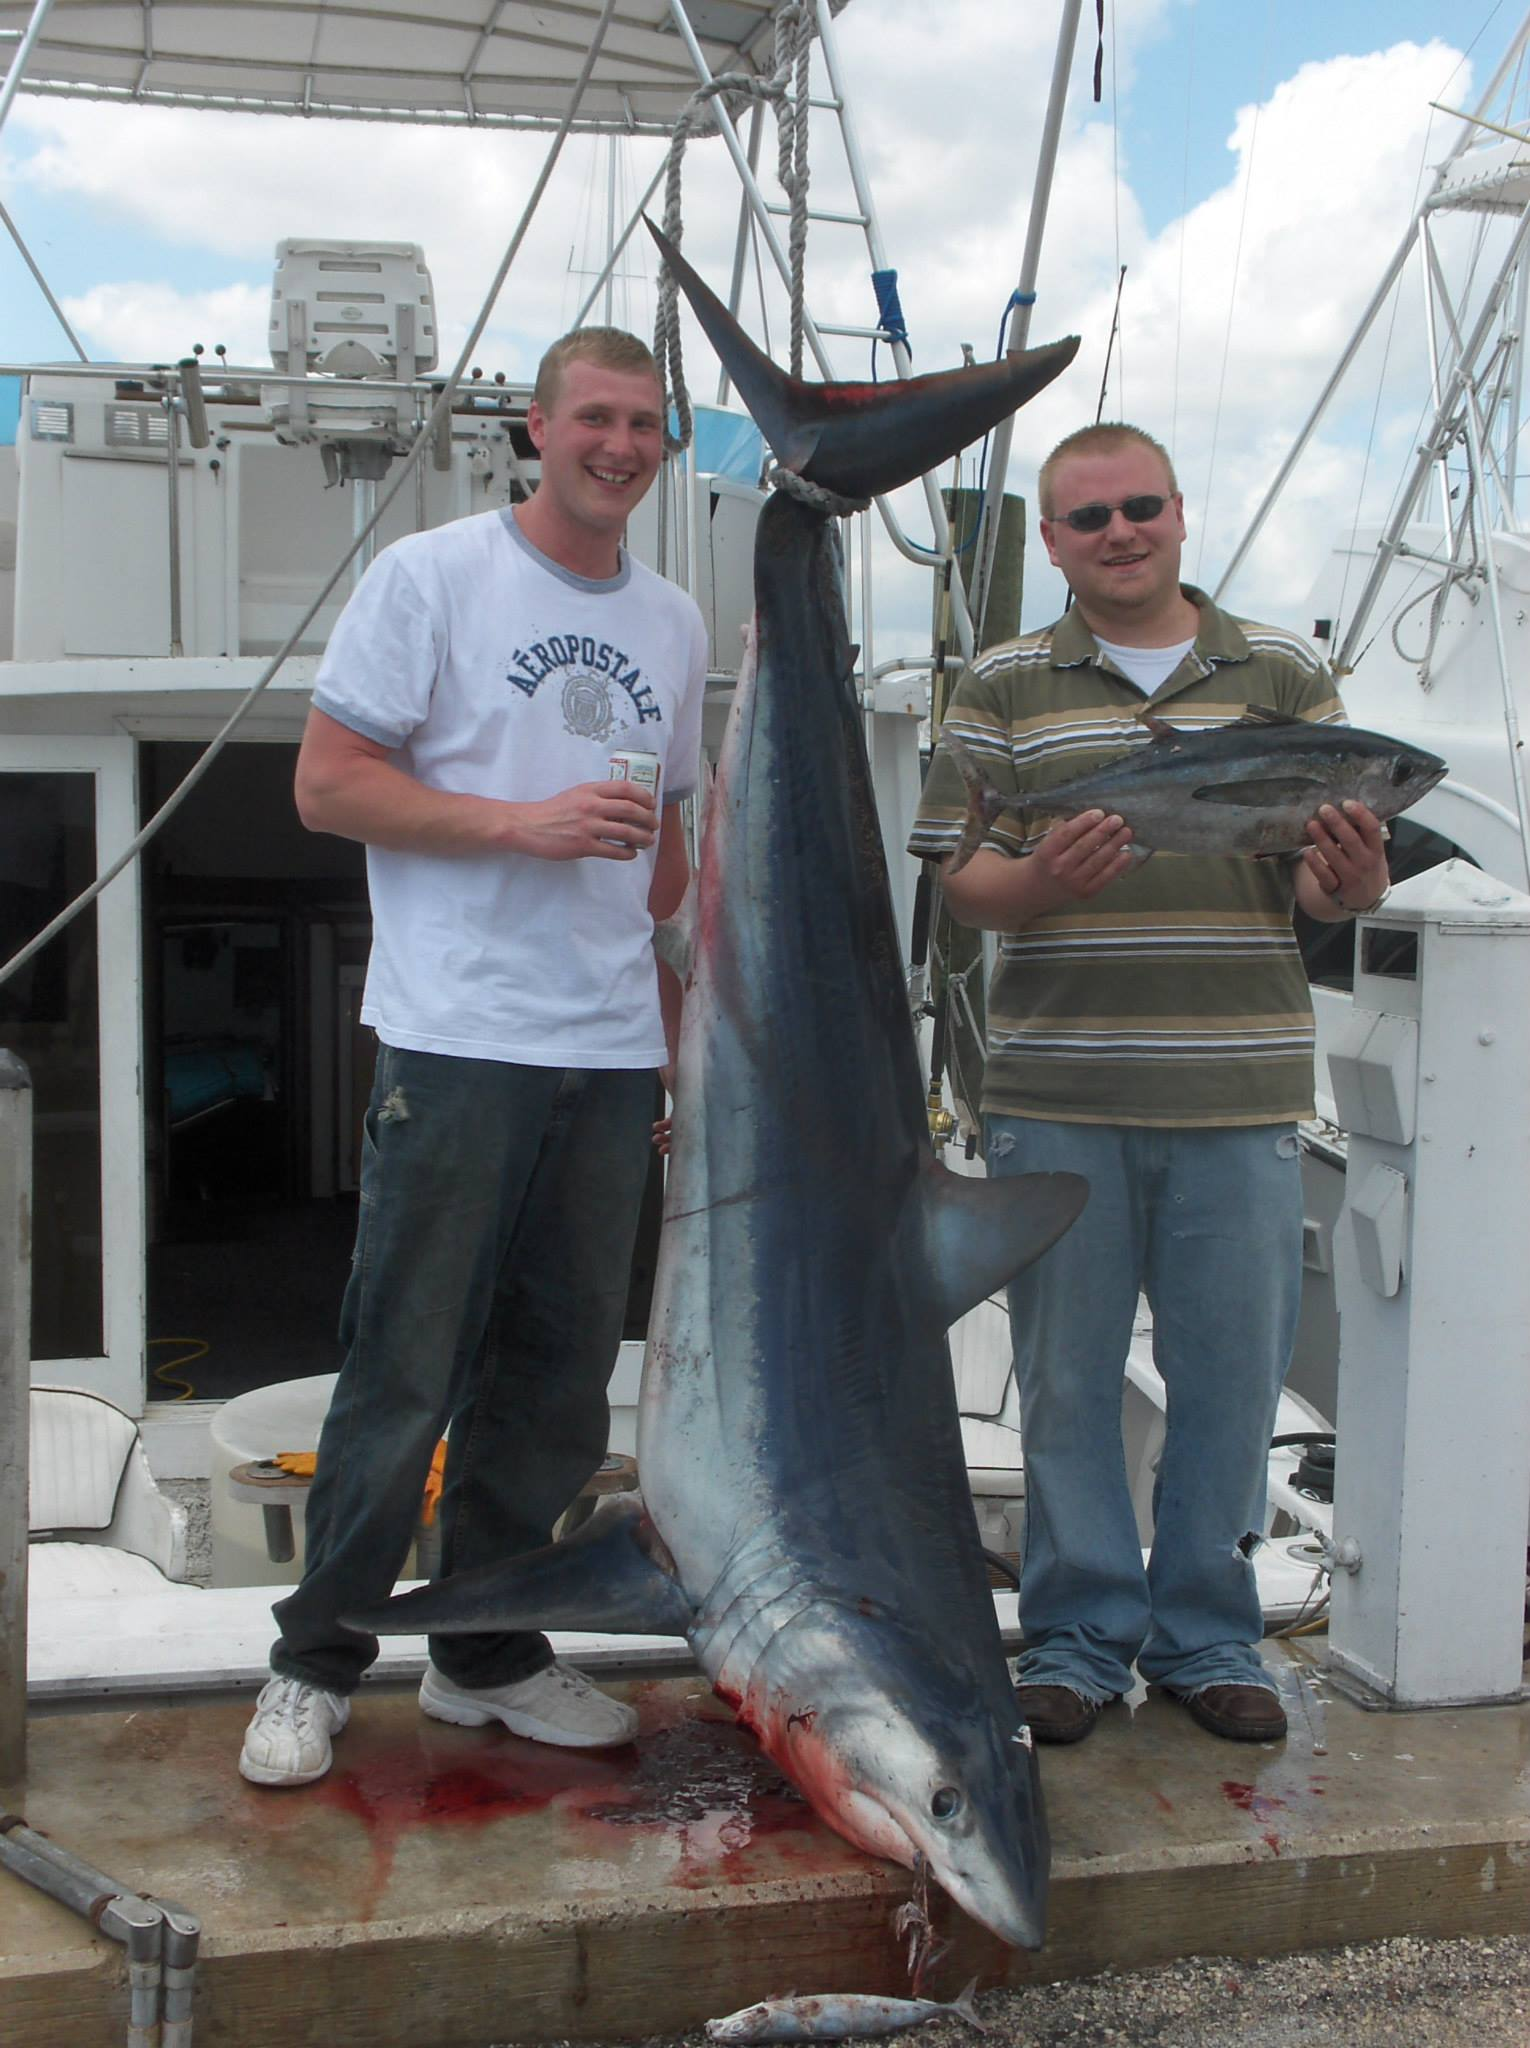 Ft lauderdale fishing charters photo gallery for Fishing in fort lauderdale